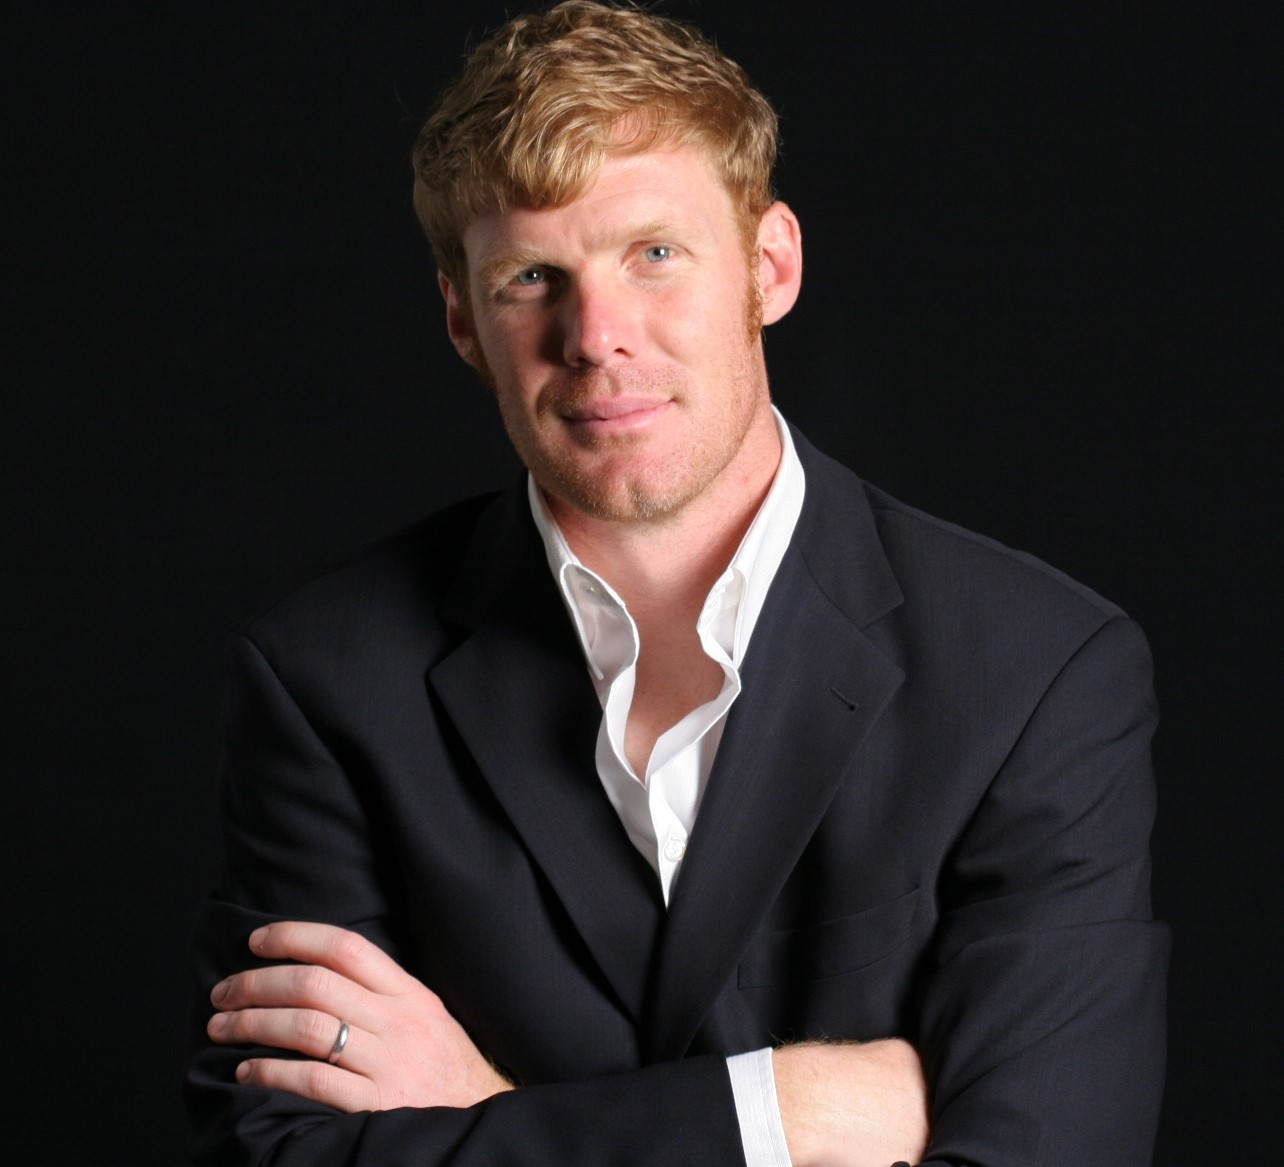 516: Alexi Lalas and Albums from 1989 show art